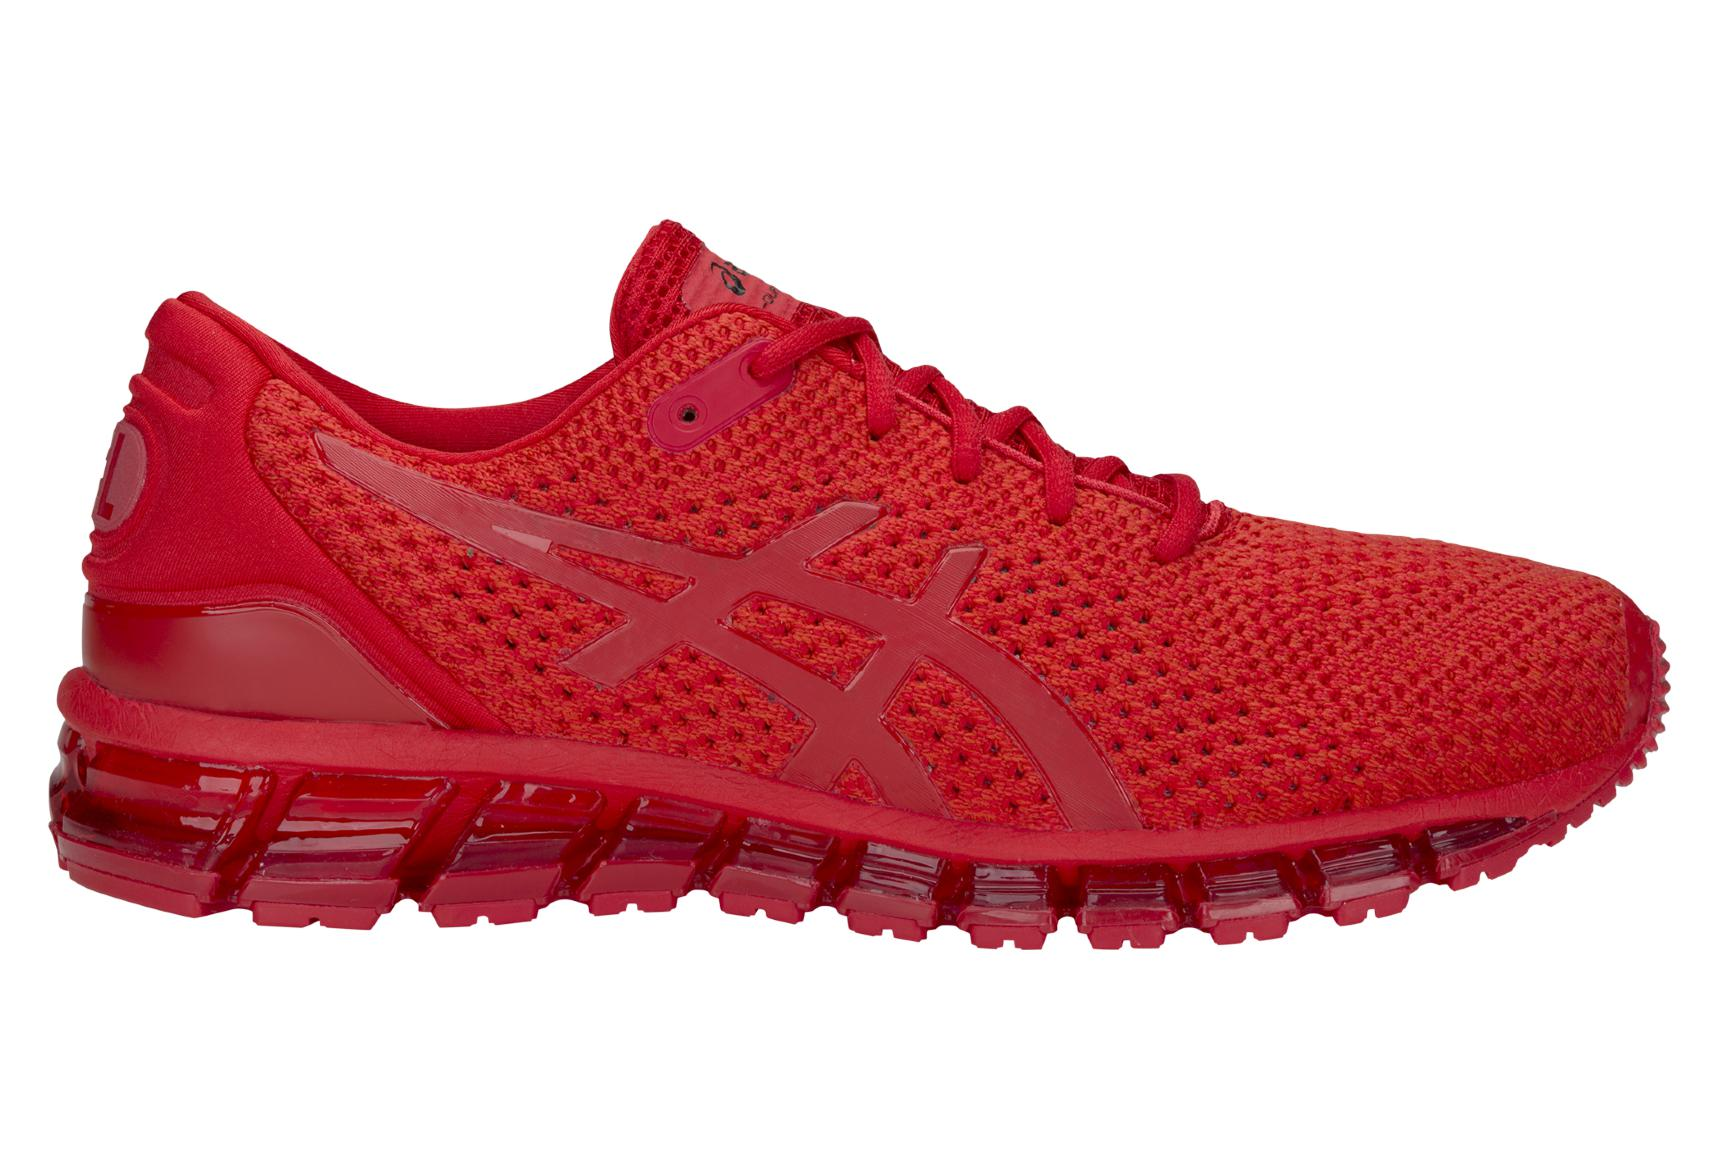 quality design 8114a 4d19b Asics Shoes Run Gel Quantum 360 Knit 2 Red Men